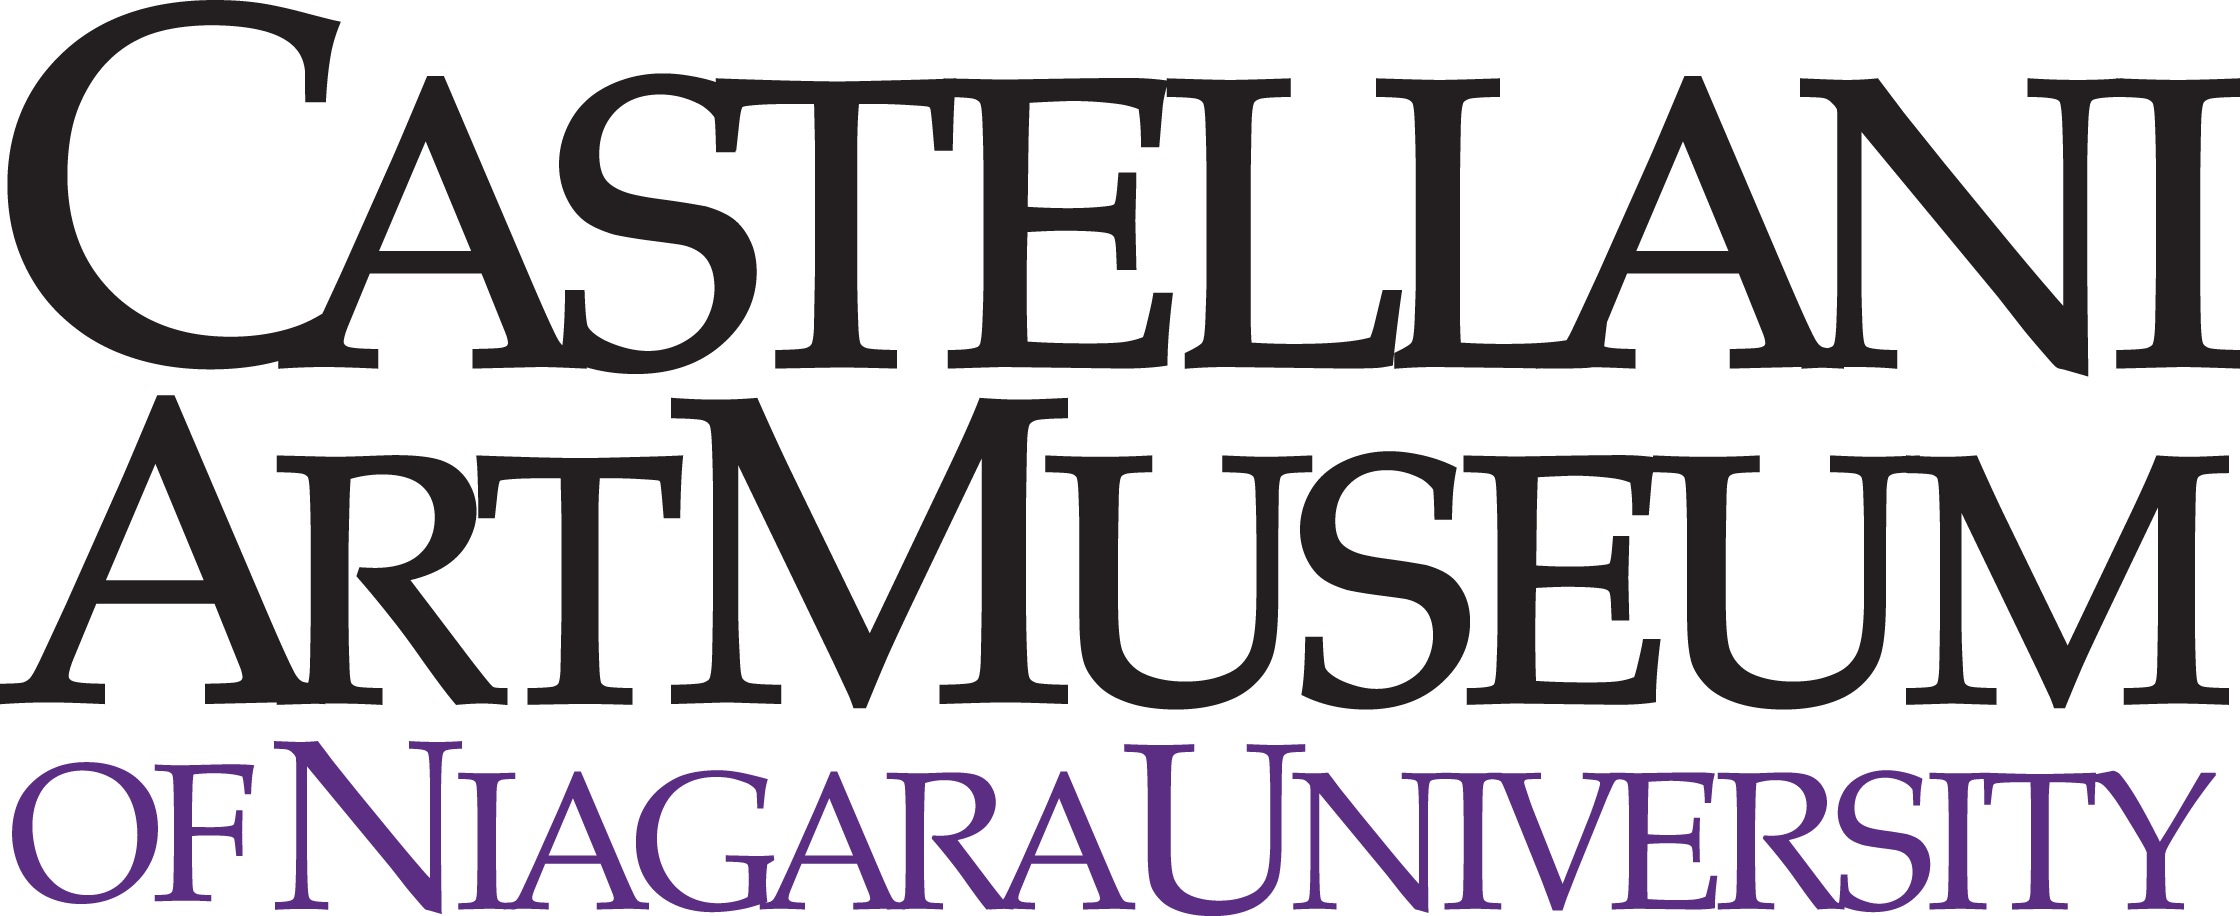 """This logo features the words """"Castellani Art Museum"""" in black over the slightly-smaller, purple words """"of Niagara University."""""""